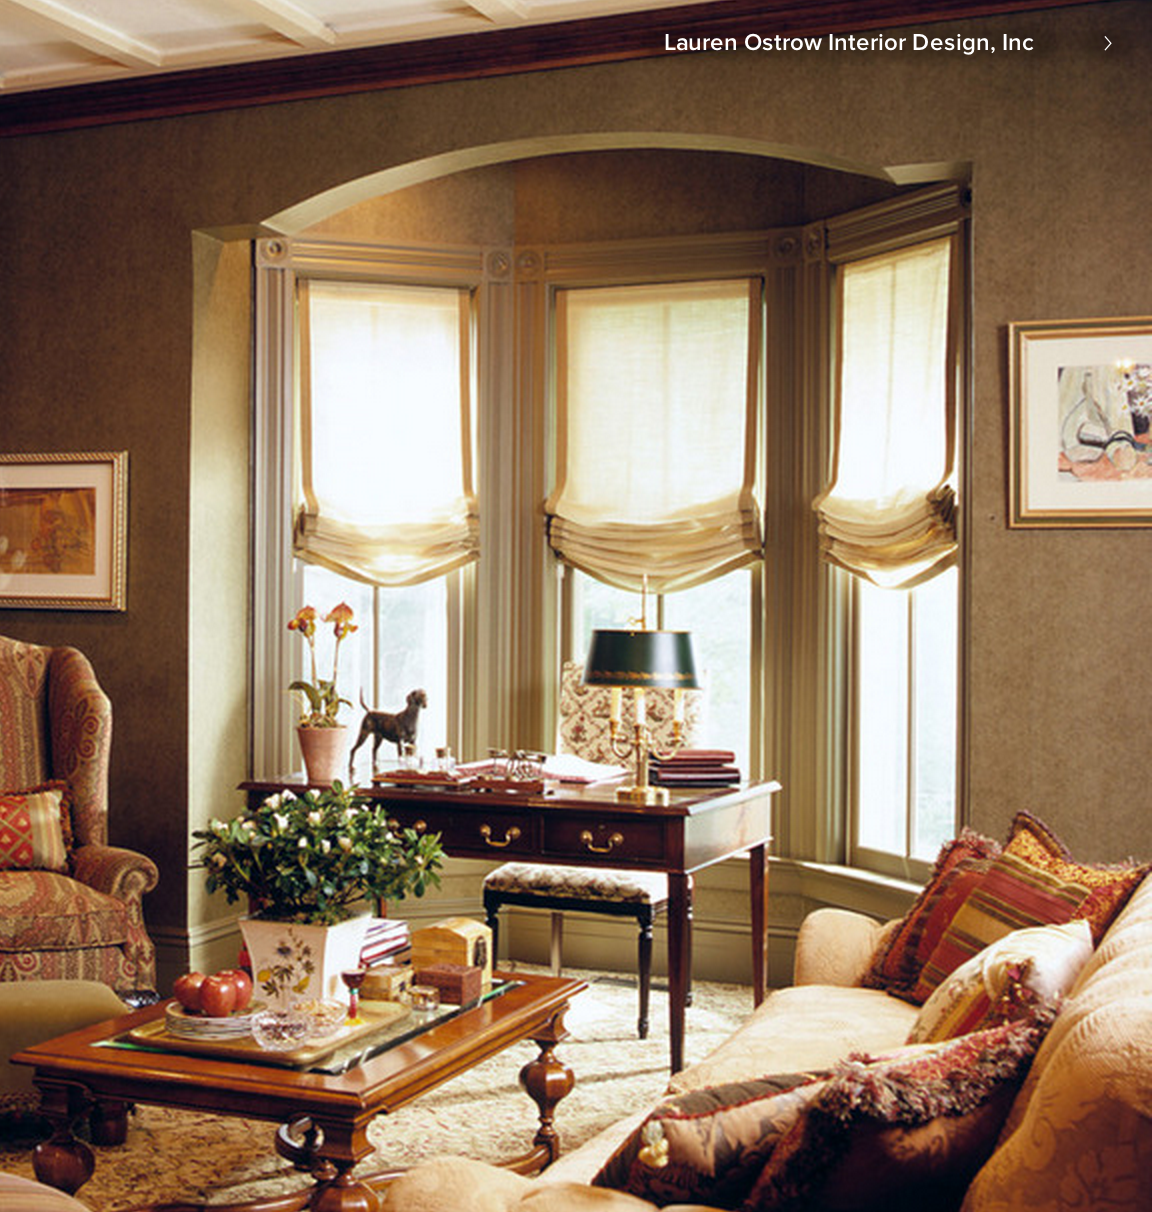 Relaxed Roman Shades In A Bay Window